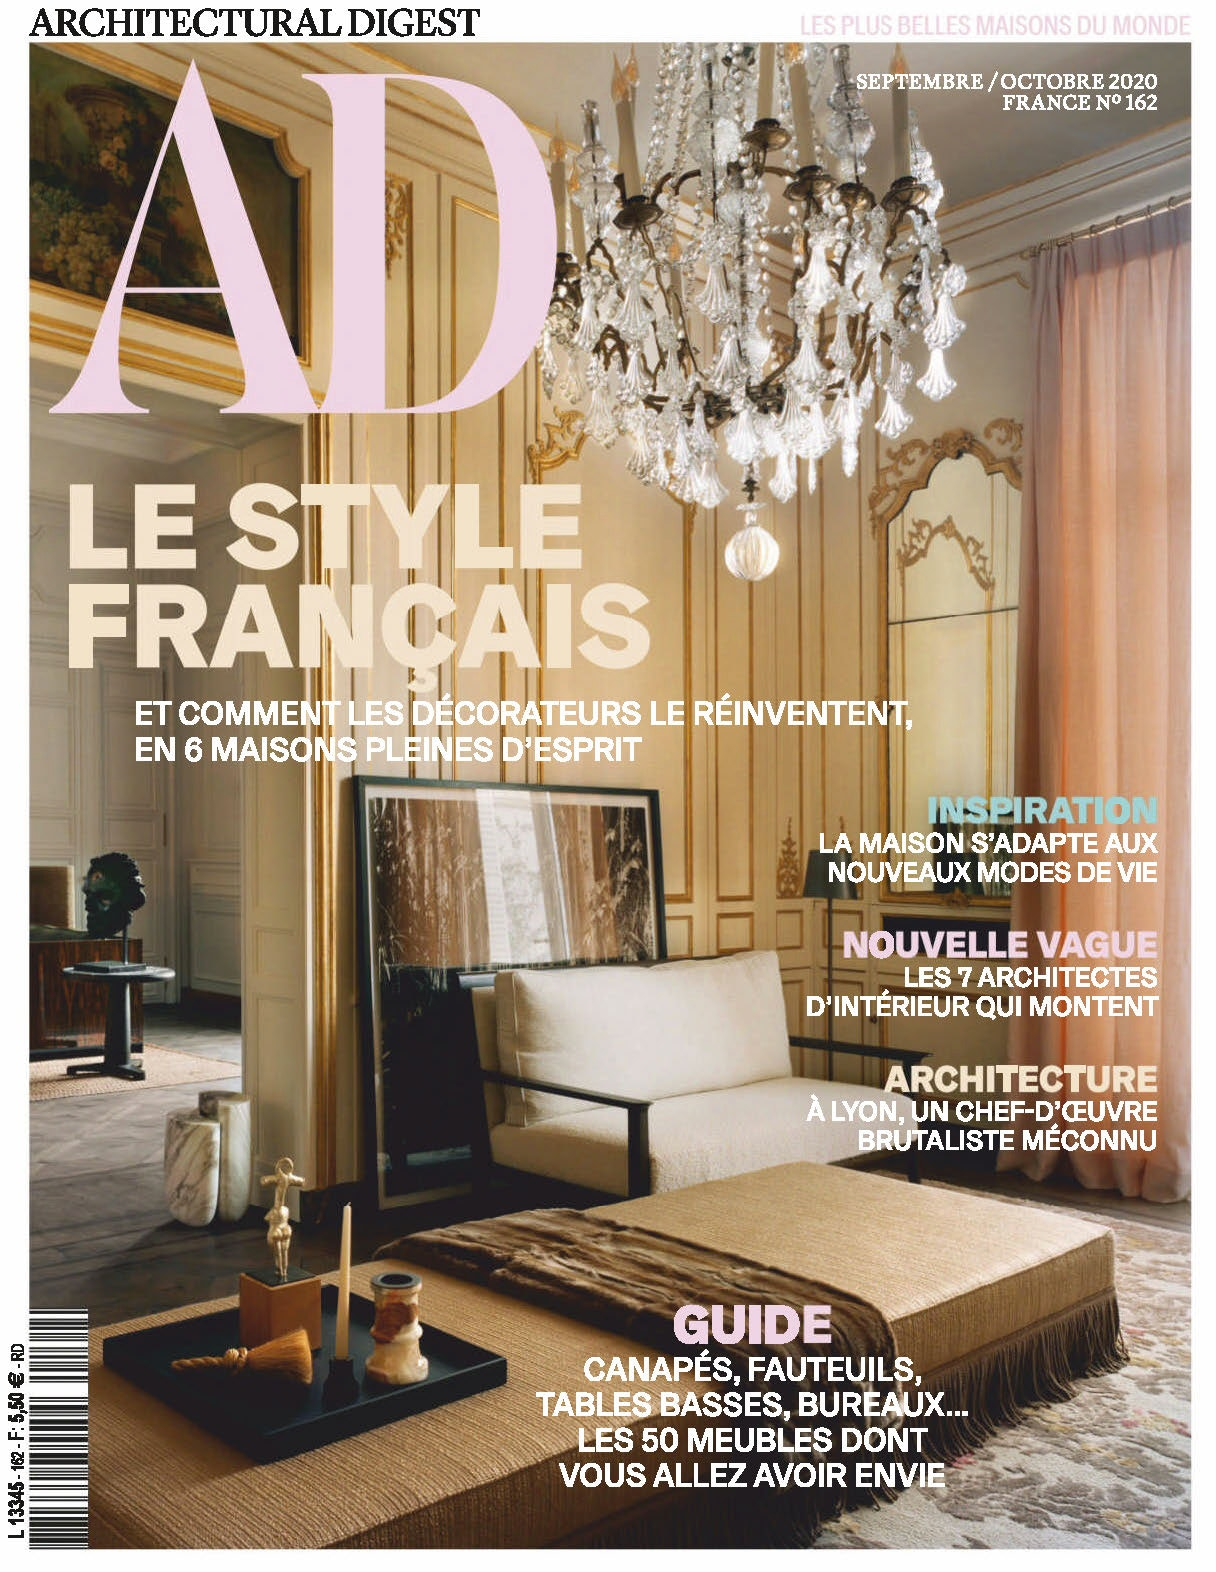 Ad france september 2020 cover